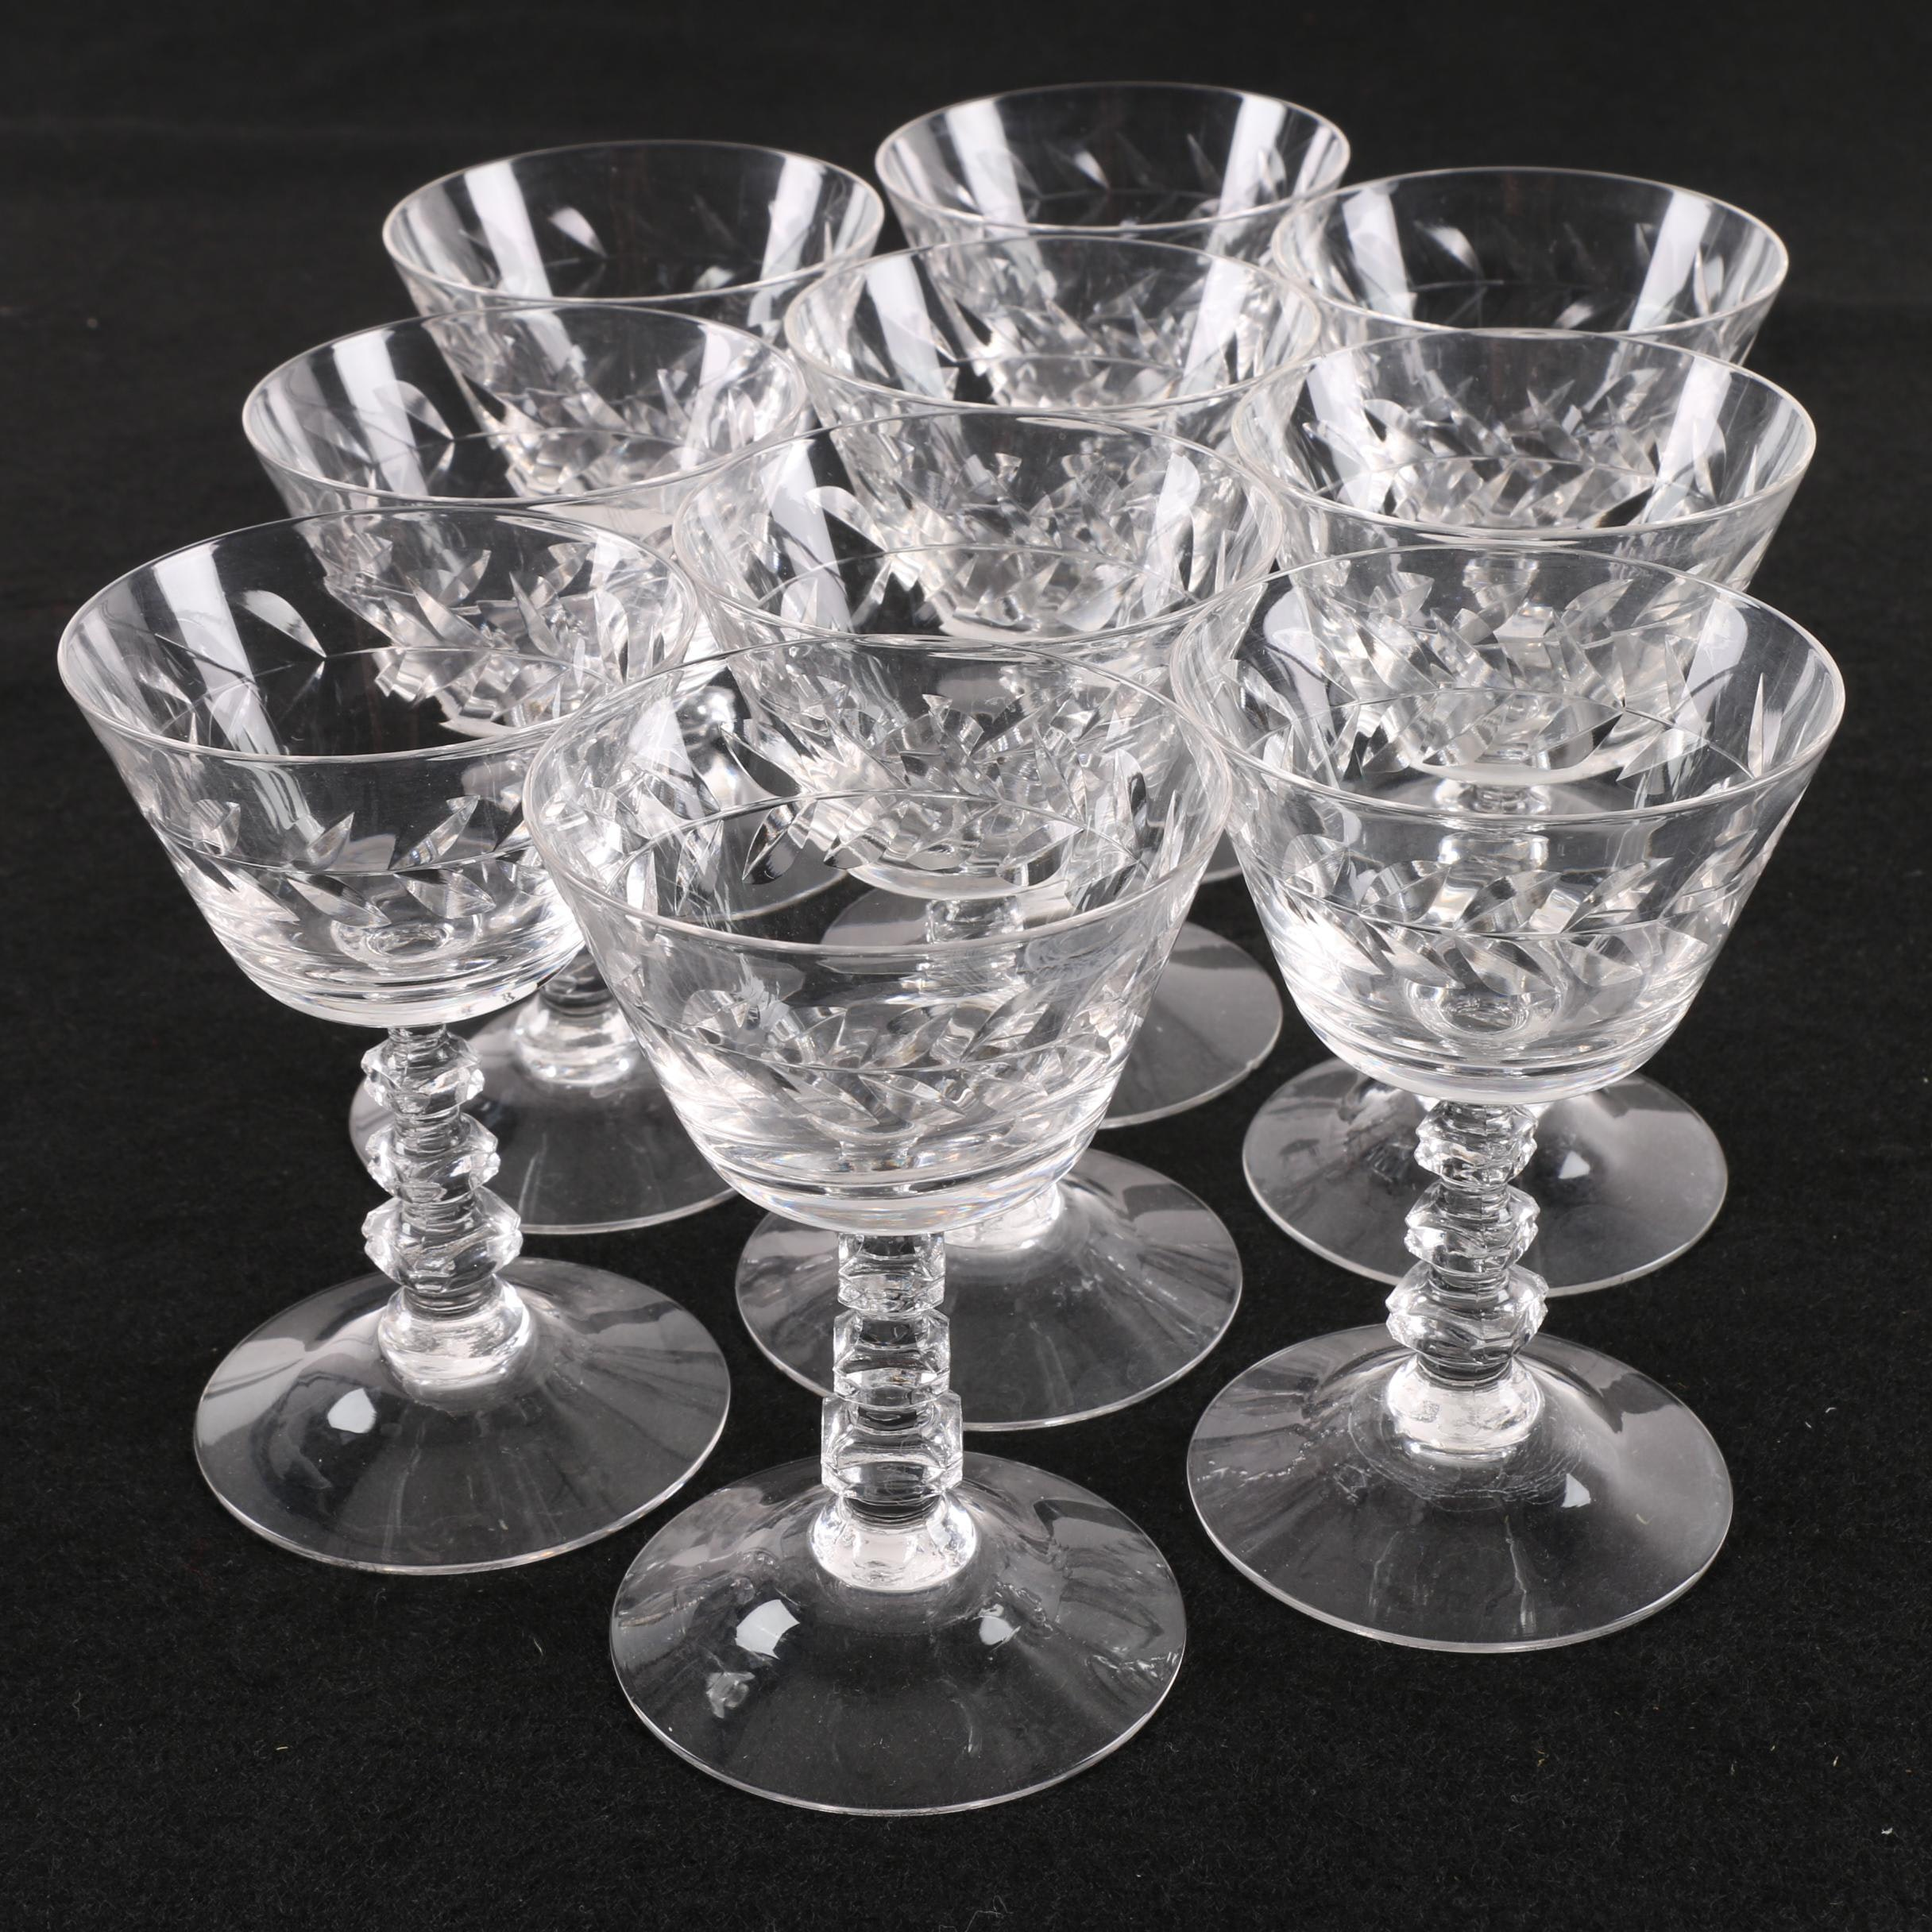 Vintage Crystal Cocktail Glasses